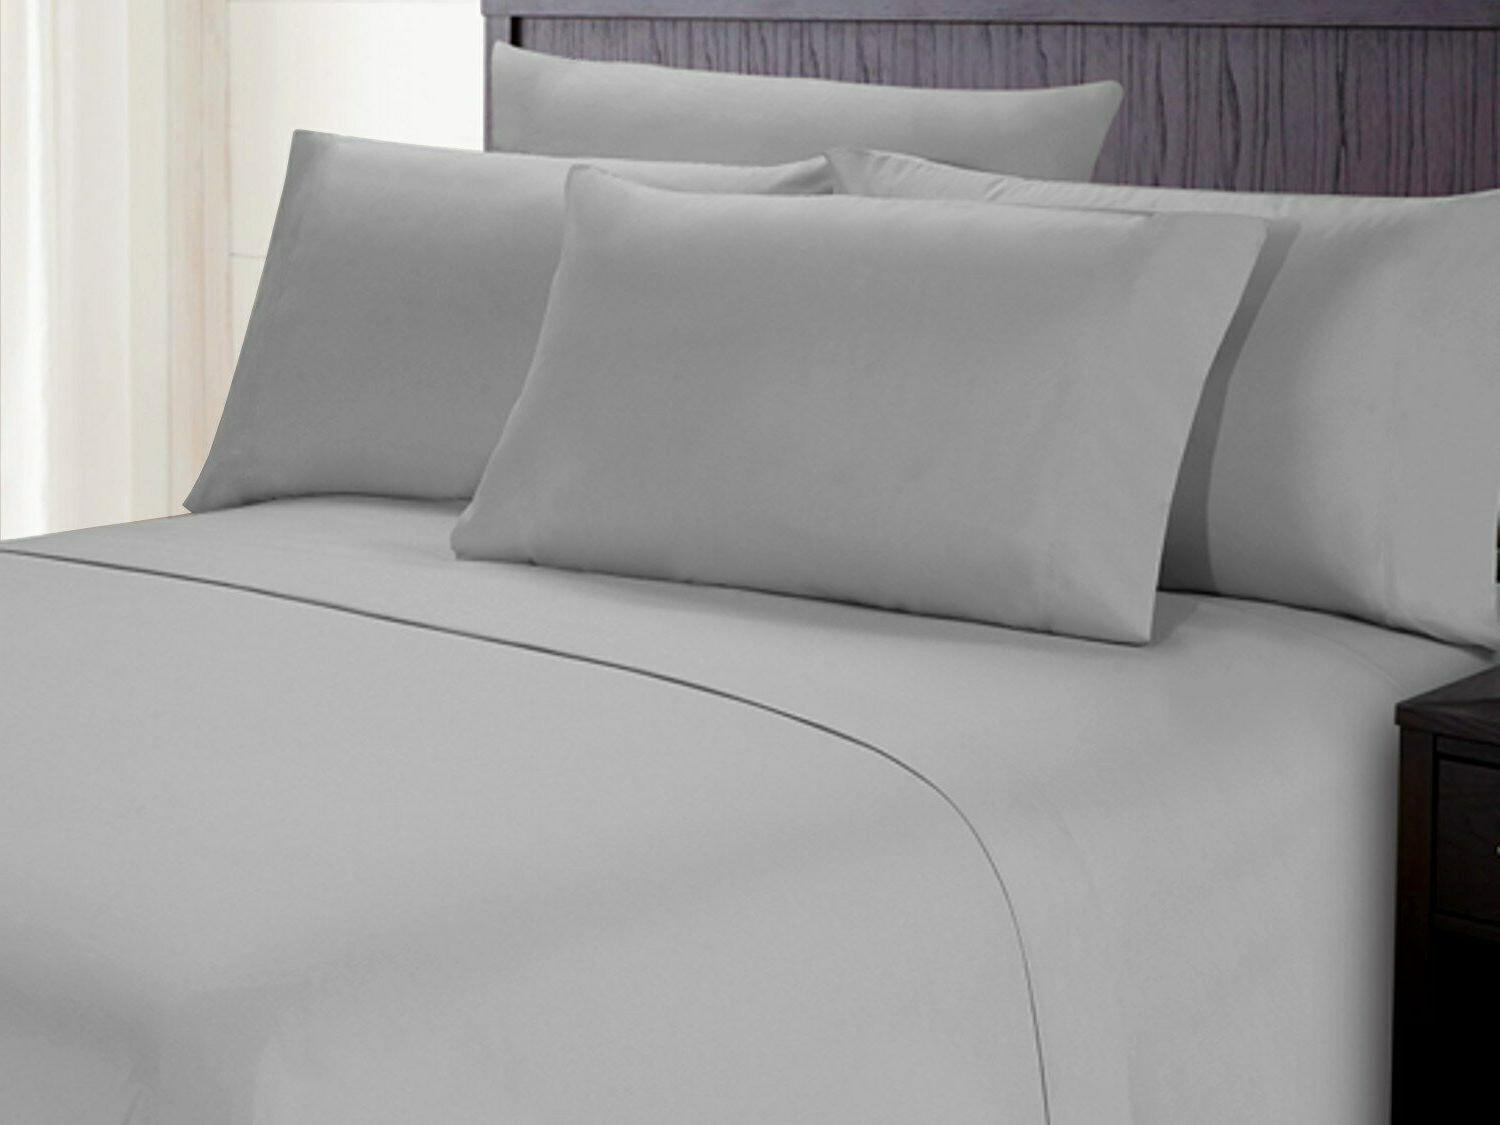 100% Cotton Bed with Corner Bands.